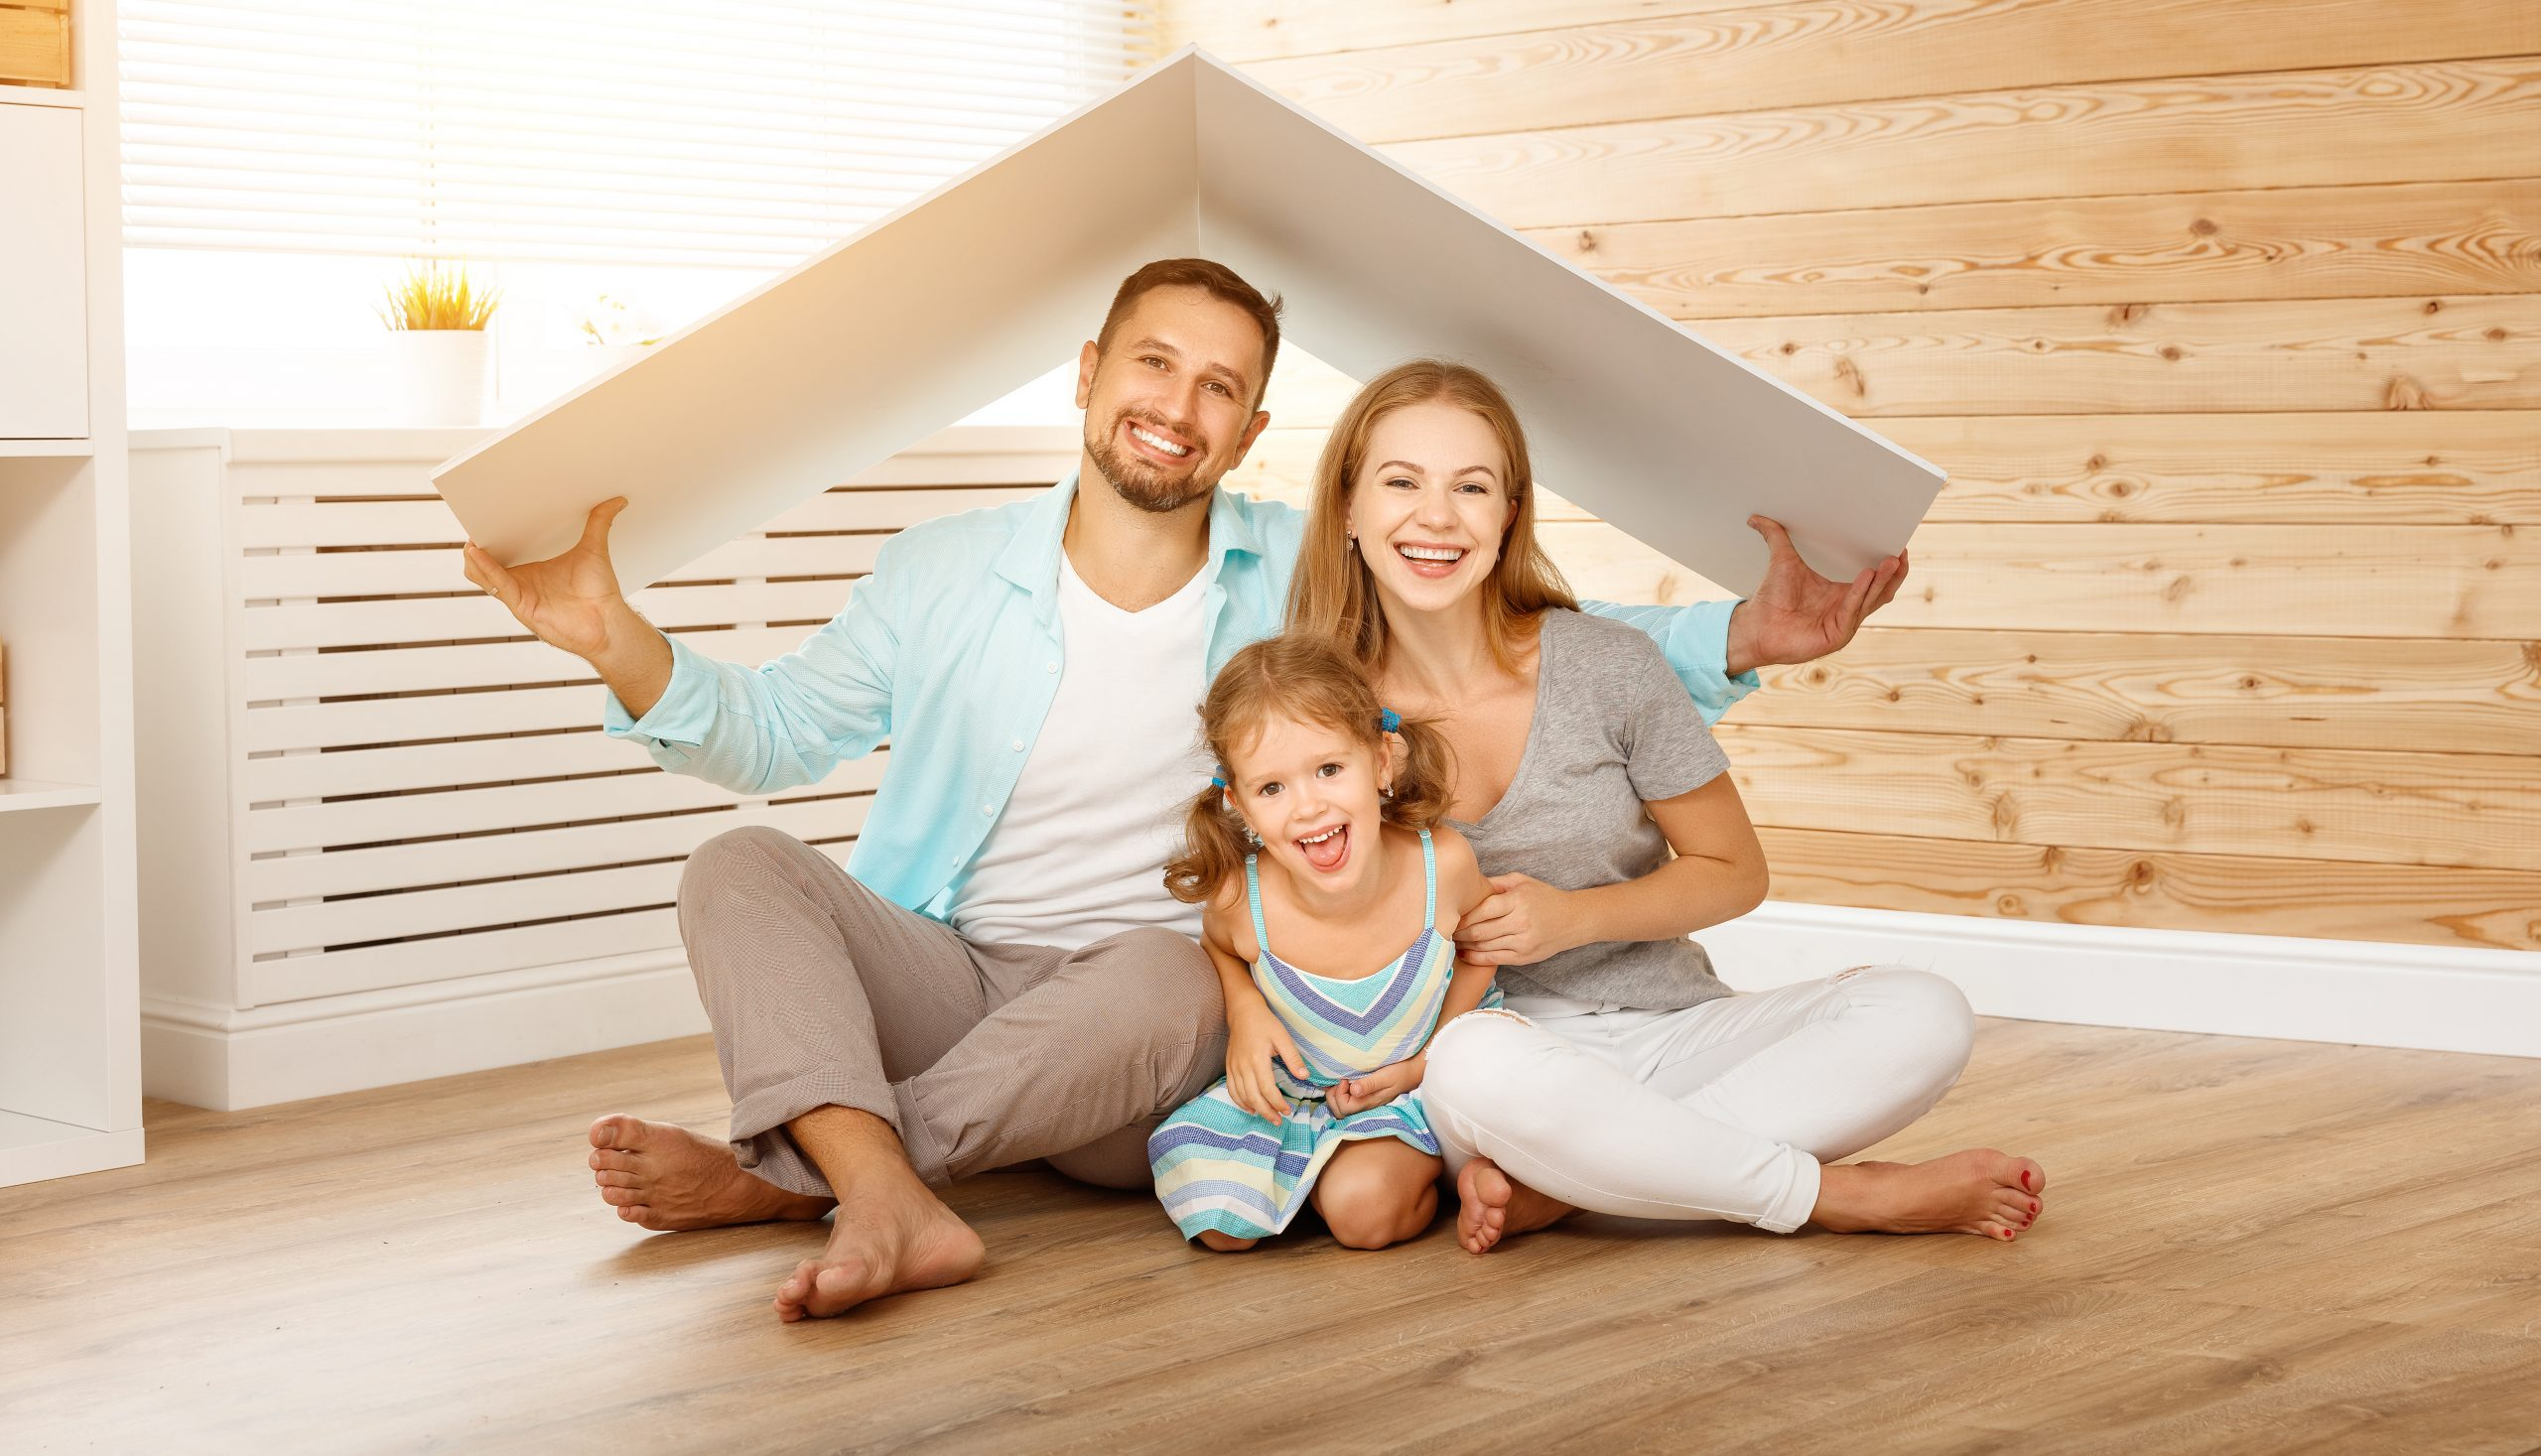 Happy family in a new home. Mom, dad and daughter